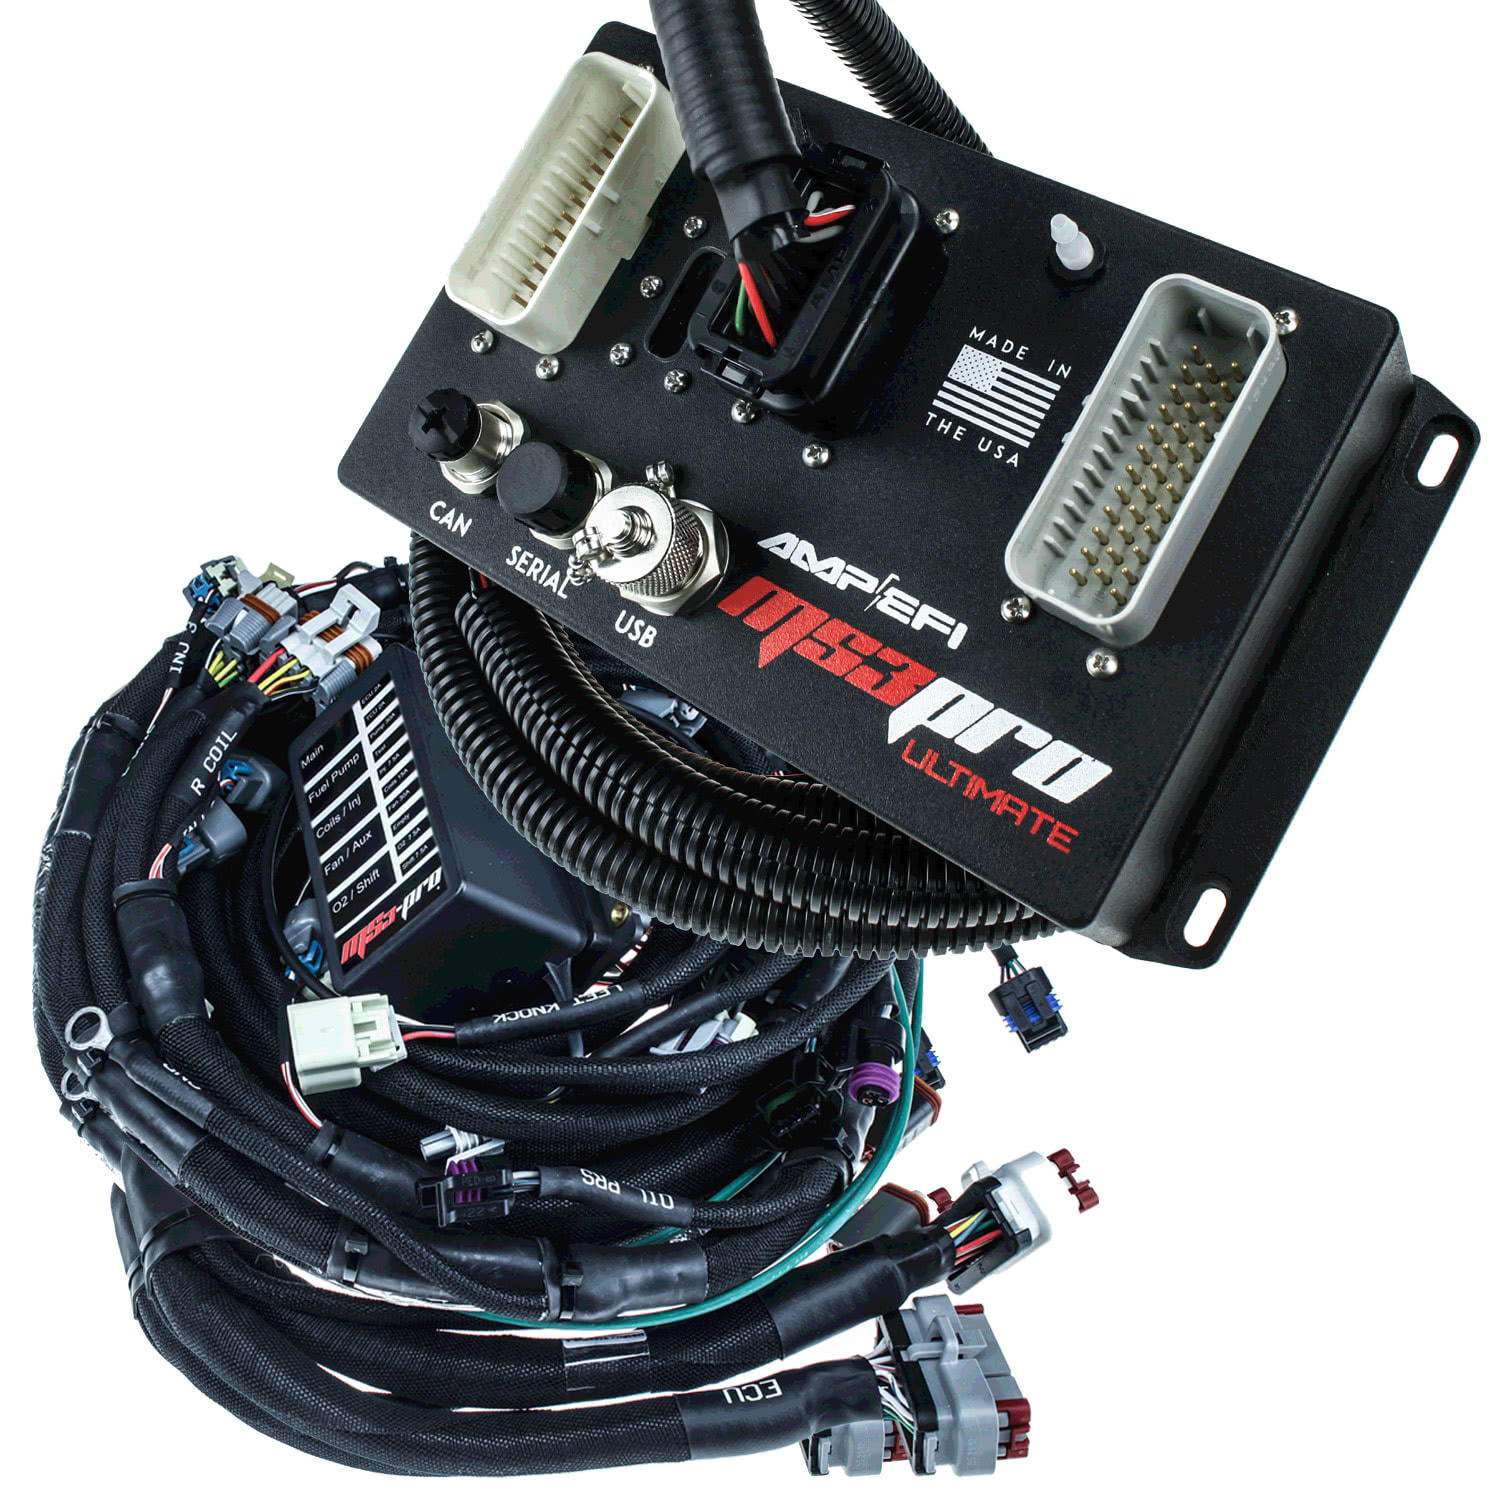 MS3Pro Ultimate by AMP EFI for GM LS Engines, MS3Pro ULTIMATE GM LS 24x, MS3Pro ULTIMATE GM LS 58x